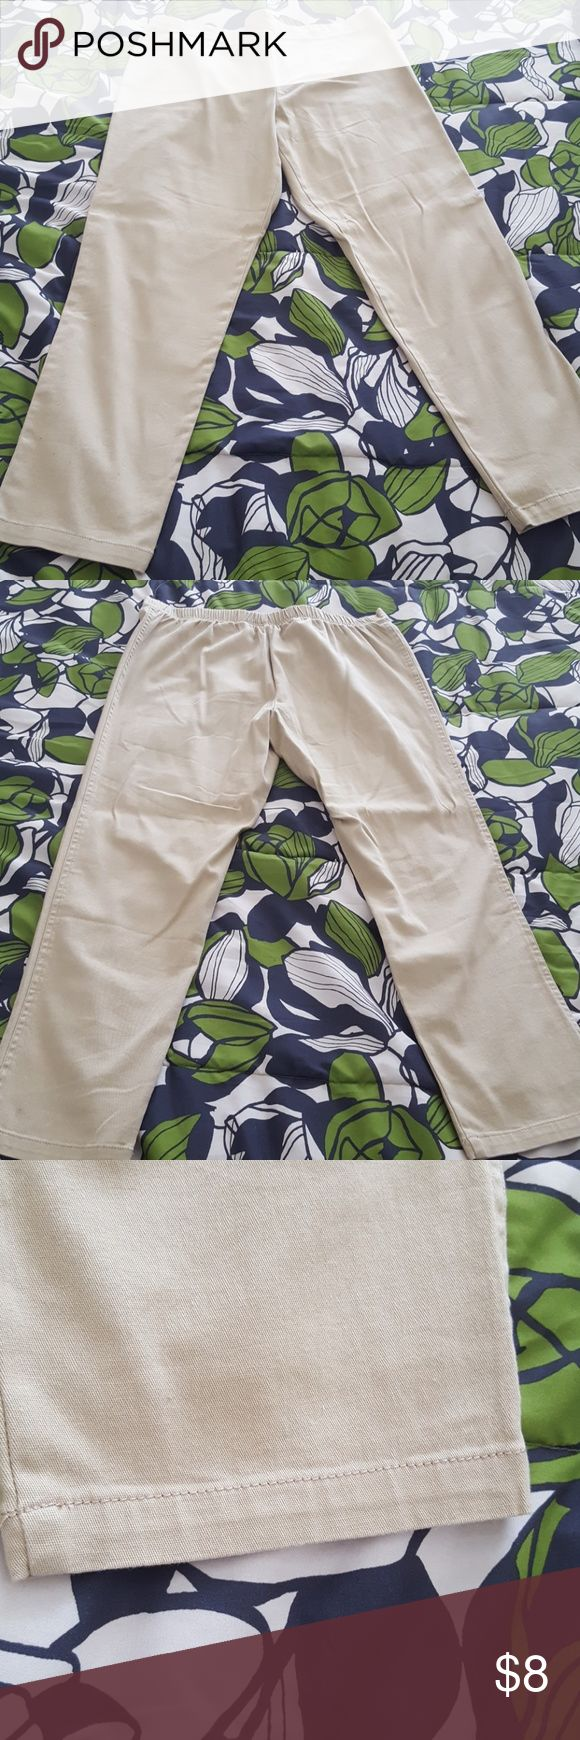 Womens Khaki Pants NWOT (L) 12P-14P Khaki White Stag pants size large 12 petite to 14 petite. New without tags. Never worn. 98% cotton 2% spandex. Pleated front with elastic waistband in the back. Great condition. Machine wash. Ships from a pet free and smoke-free home. Thank you for shopping my shop! White Stag Pants Skinny